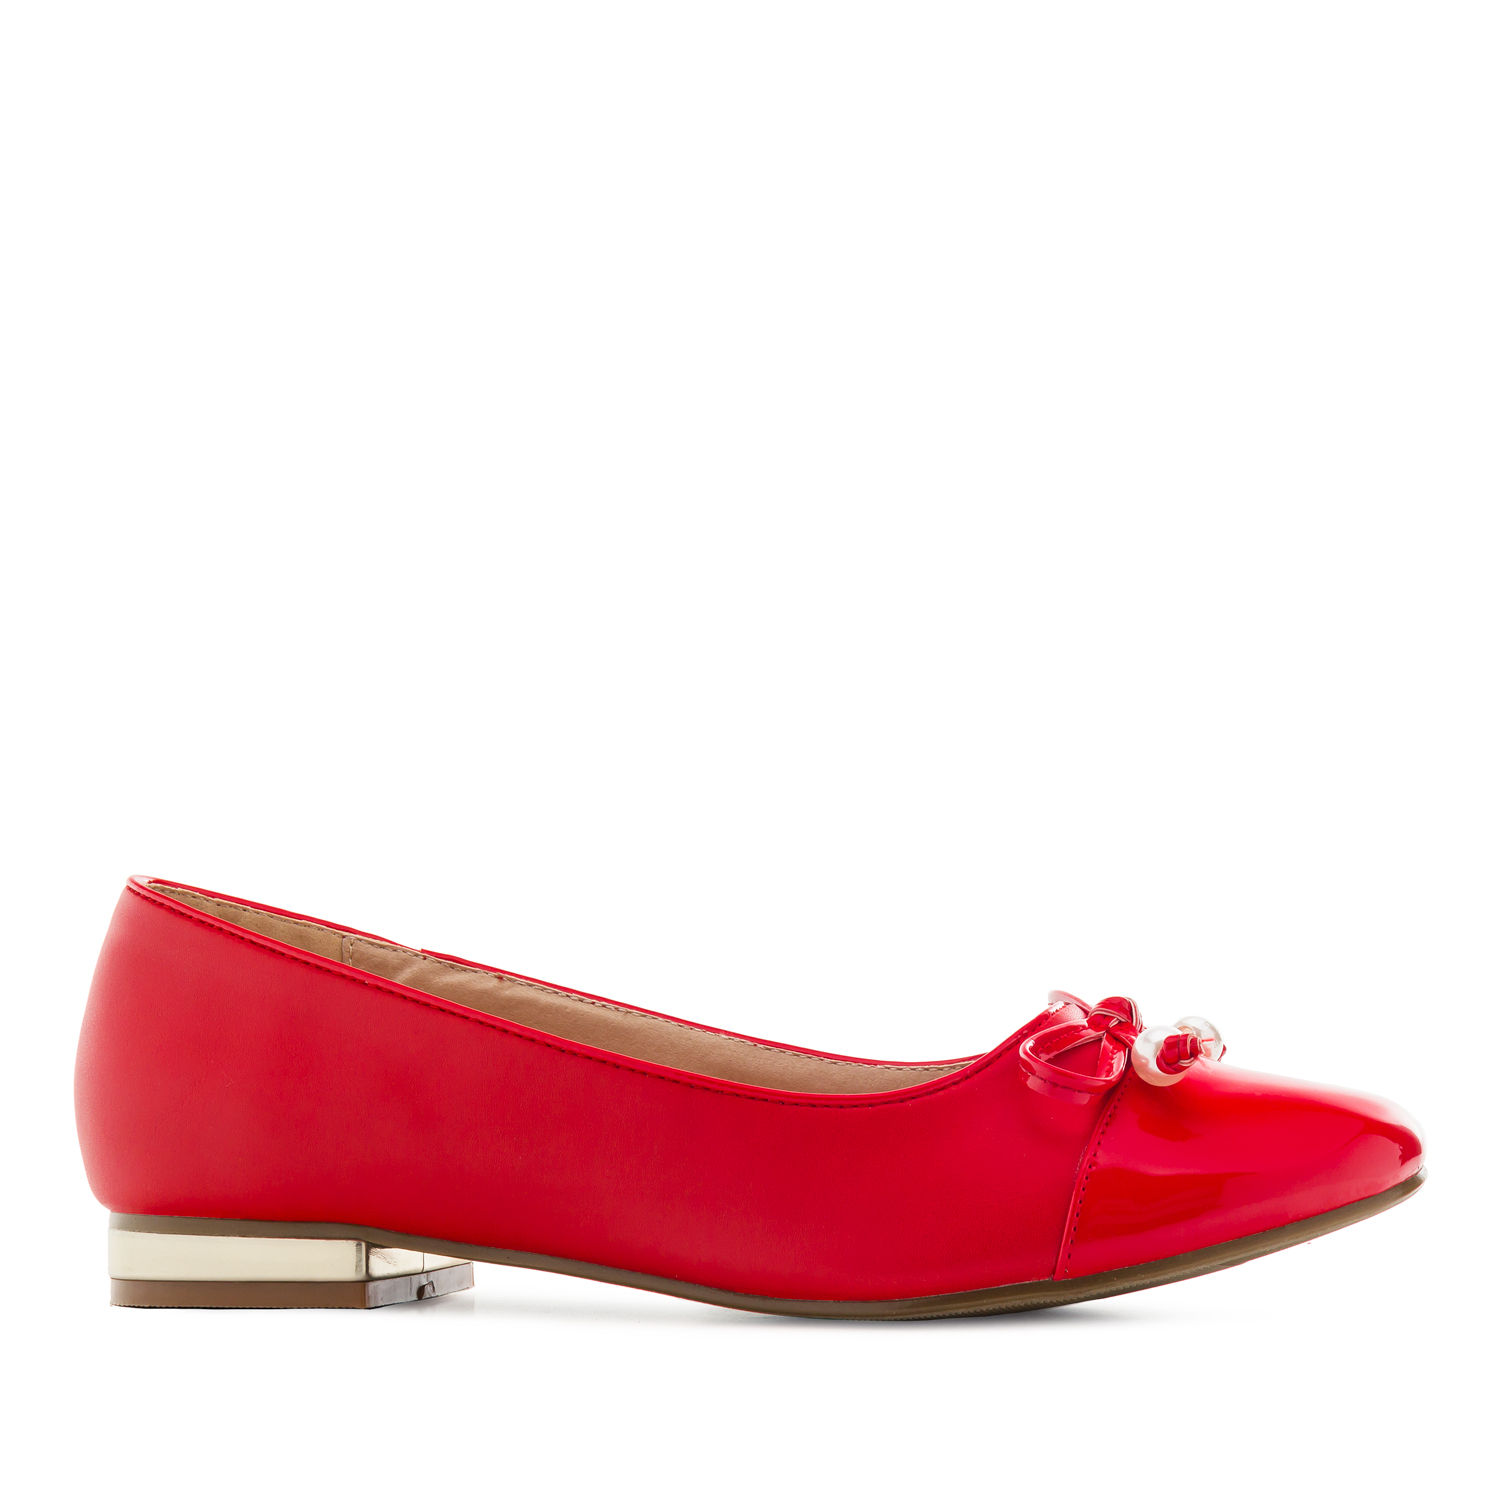 Toe-Cap Ballerinas in Red faux Leather